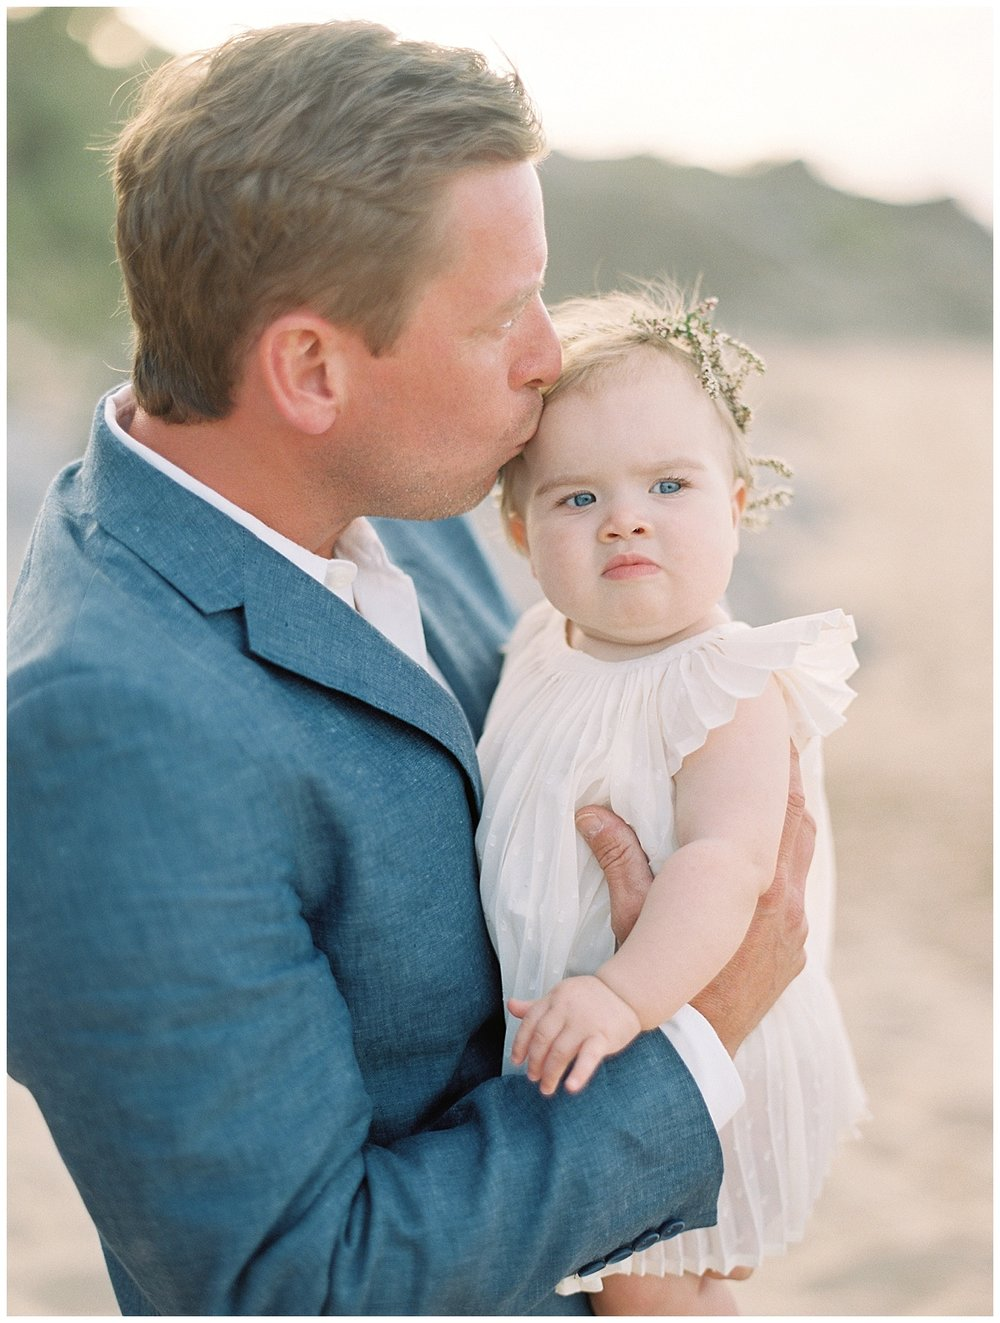 beach-elopement-groom-kissing-baby-daughter-blue-suit.jpg